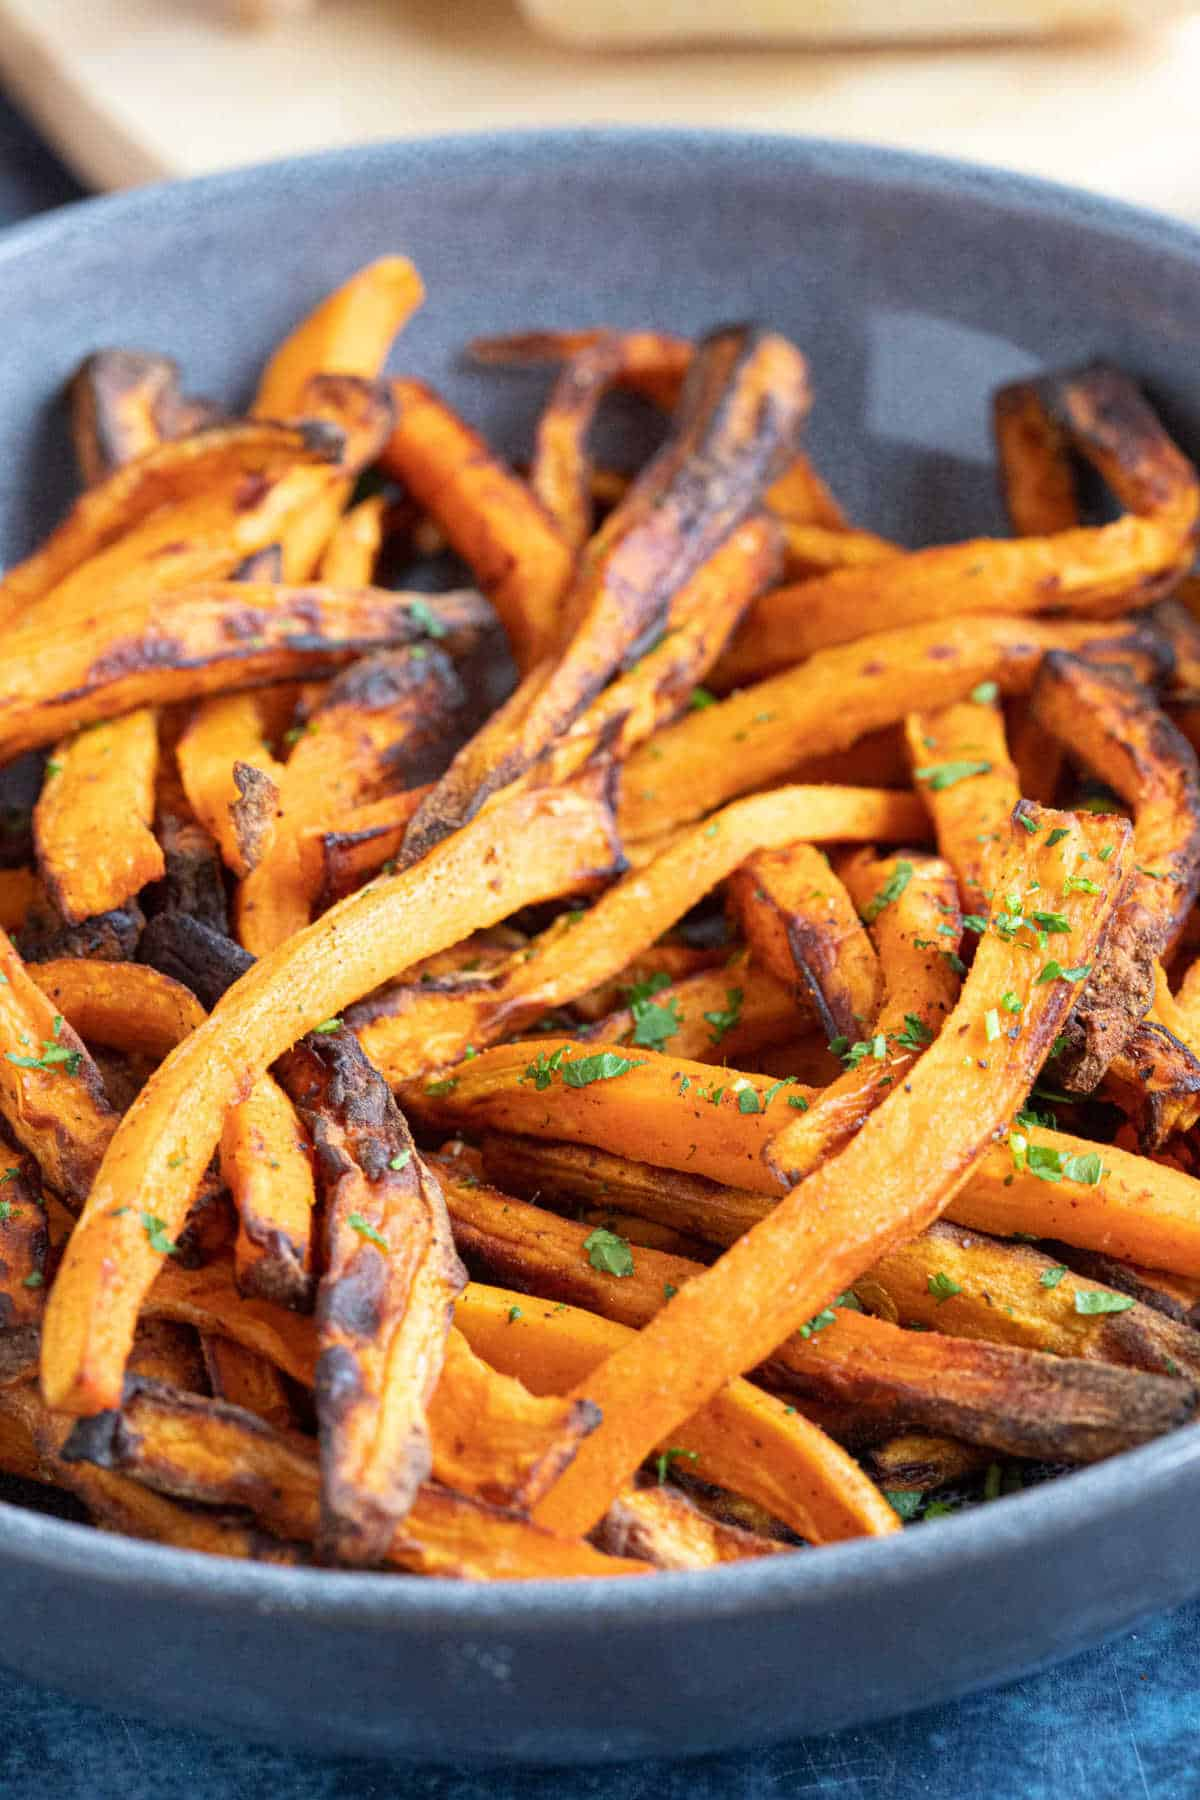 Sweet potato fries in a grey bowl served with chopped parsley.